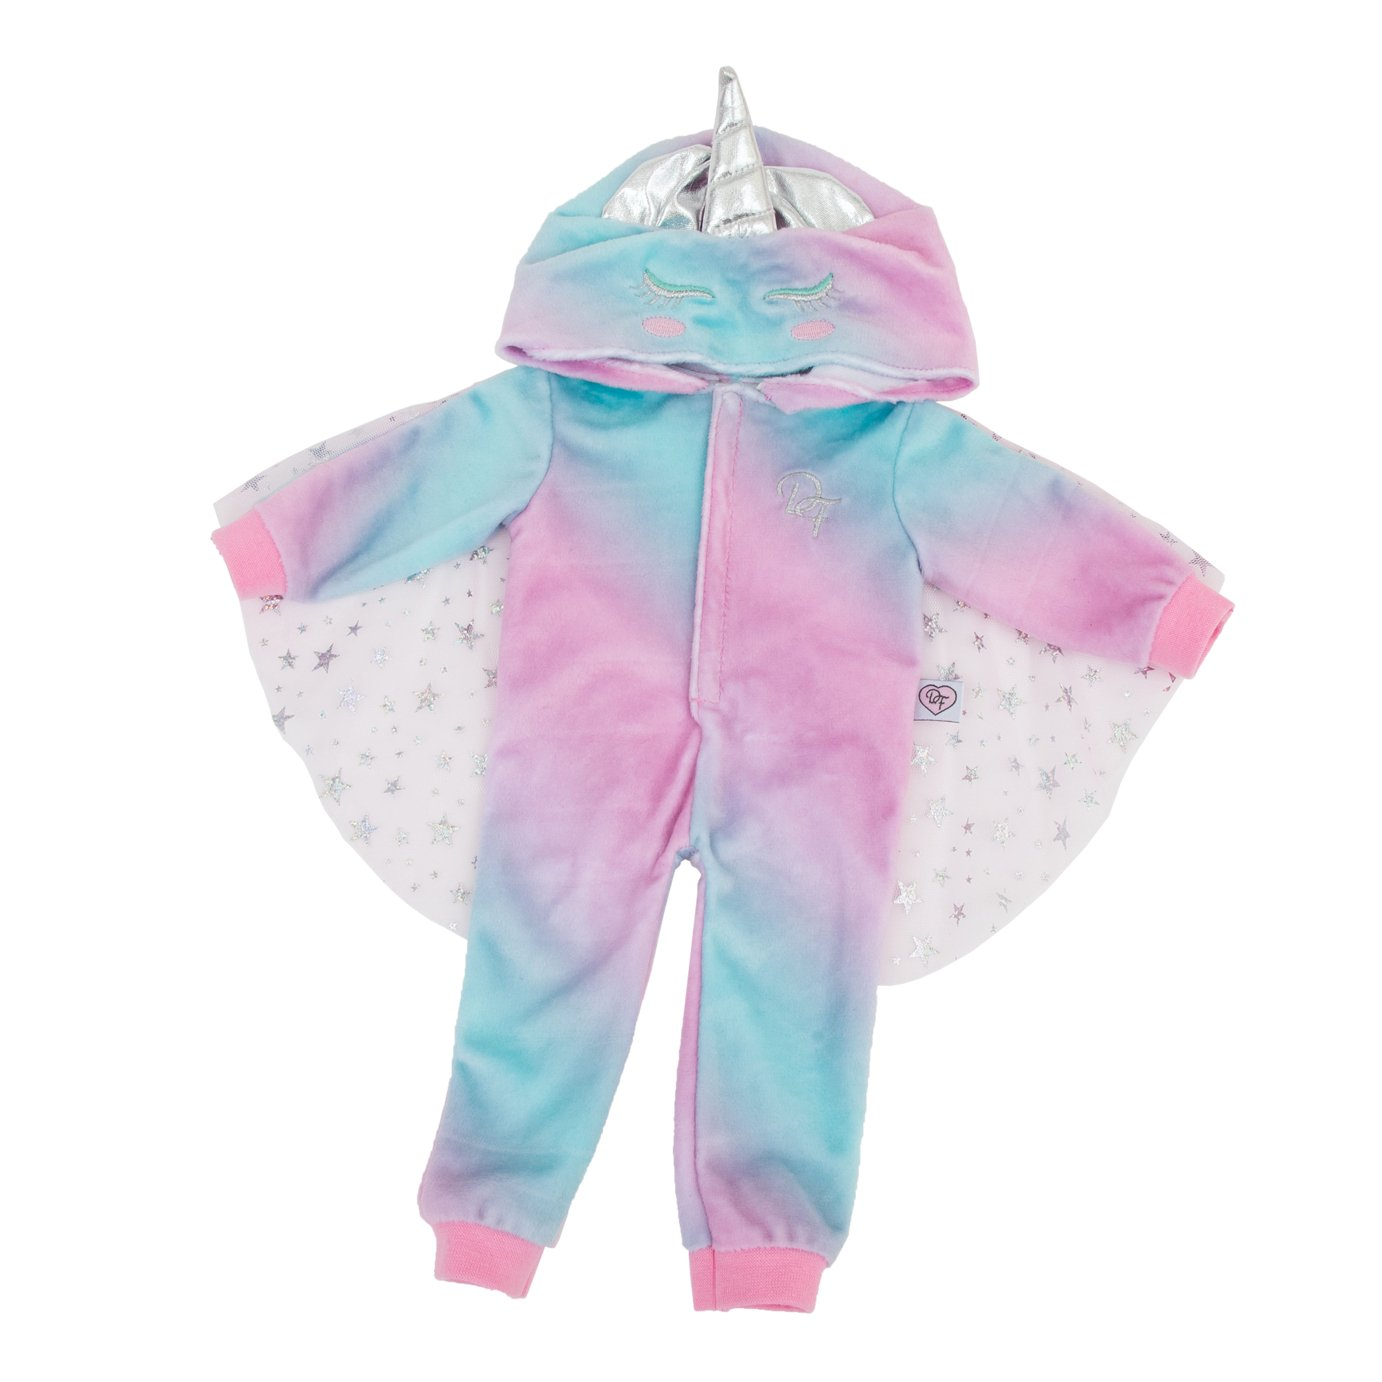 Chad Valley Designafriend Unicorn All-in-One Outfit